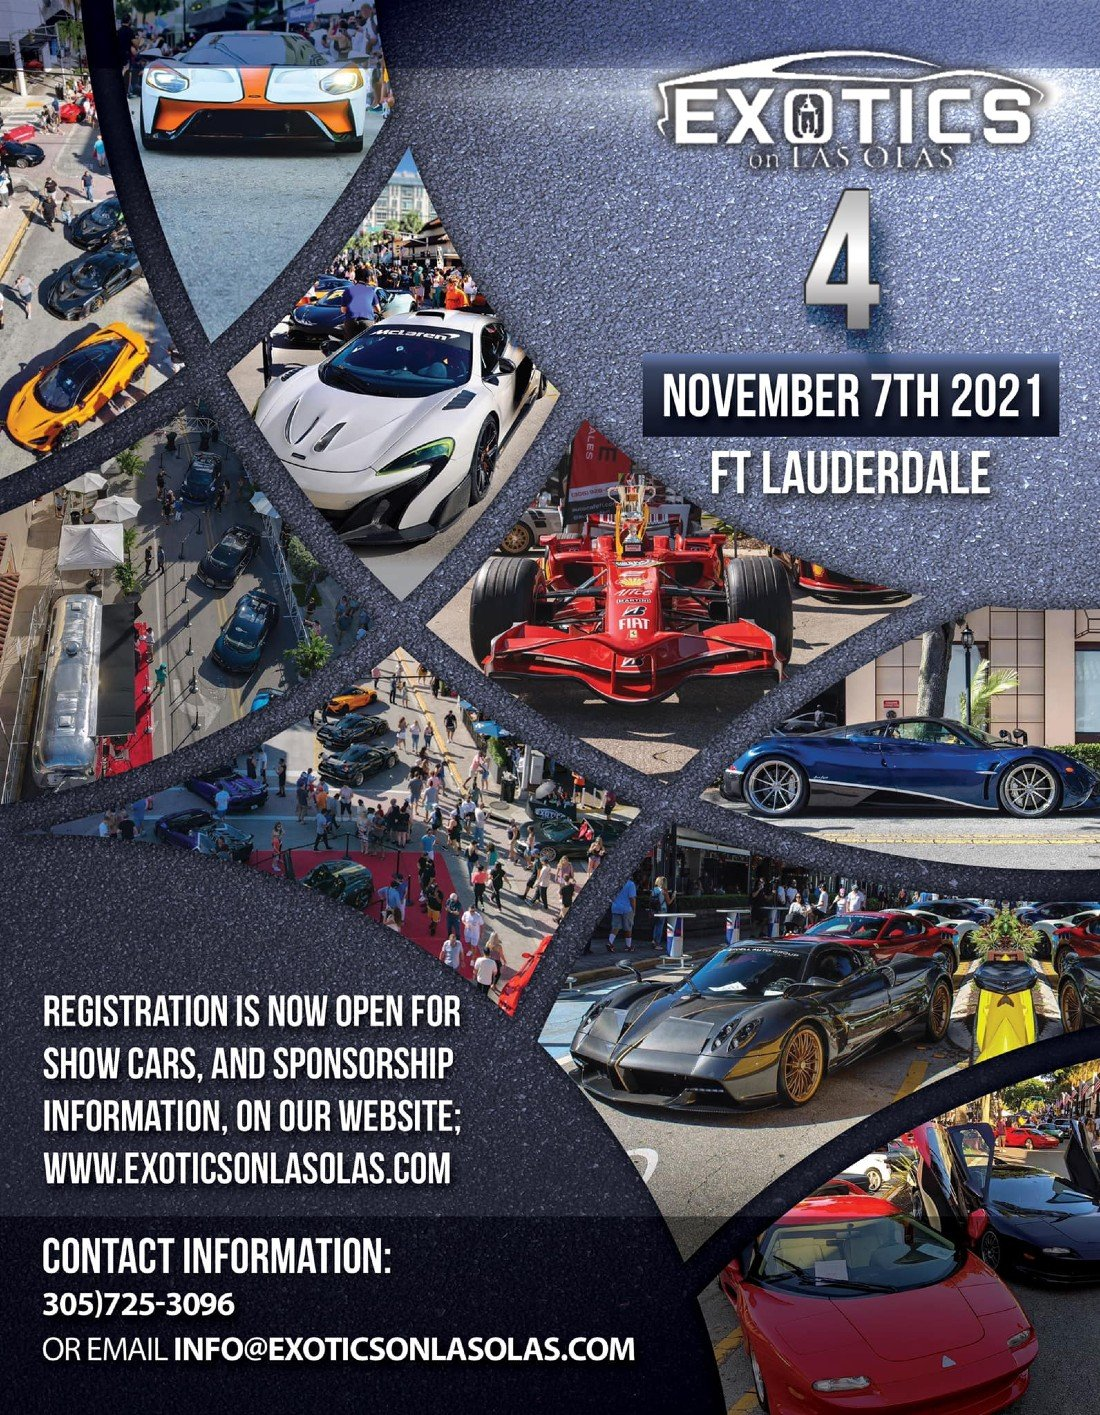 Exotics on Las Olas 4 Car Show Fort Lauderdale, 7 November   Event in Fort Lauderdale   AllEvents.in